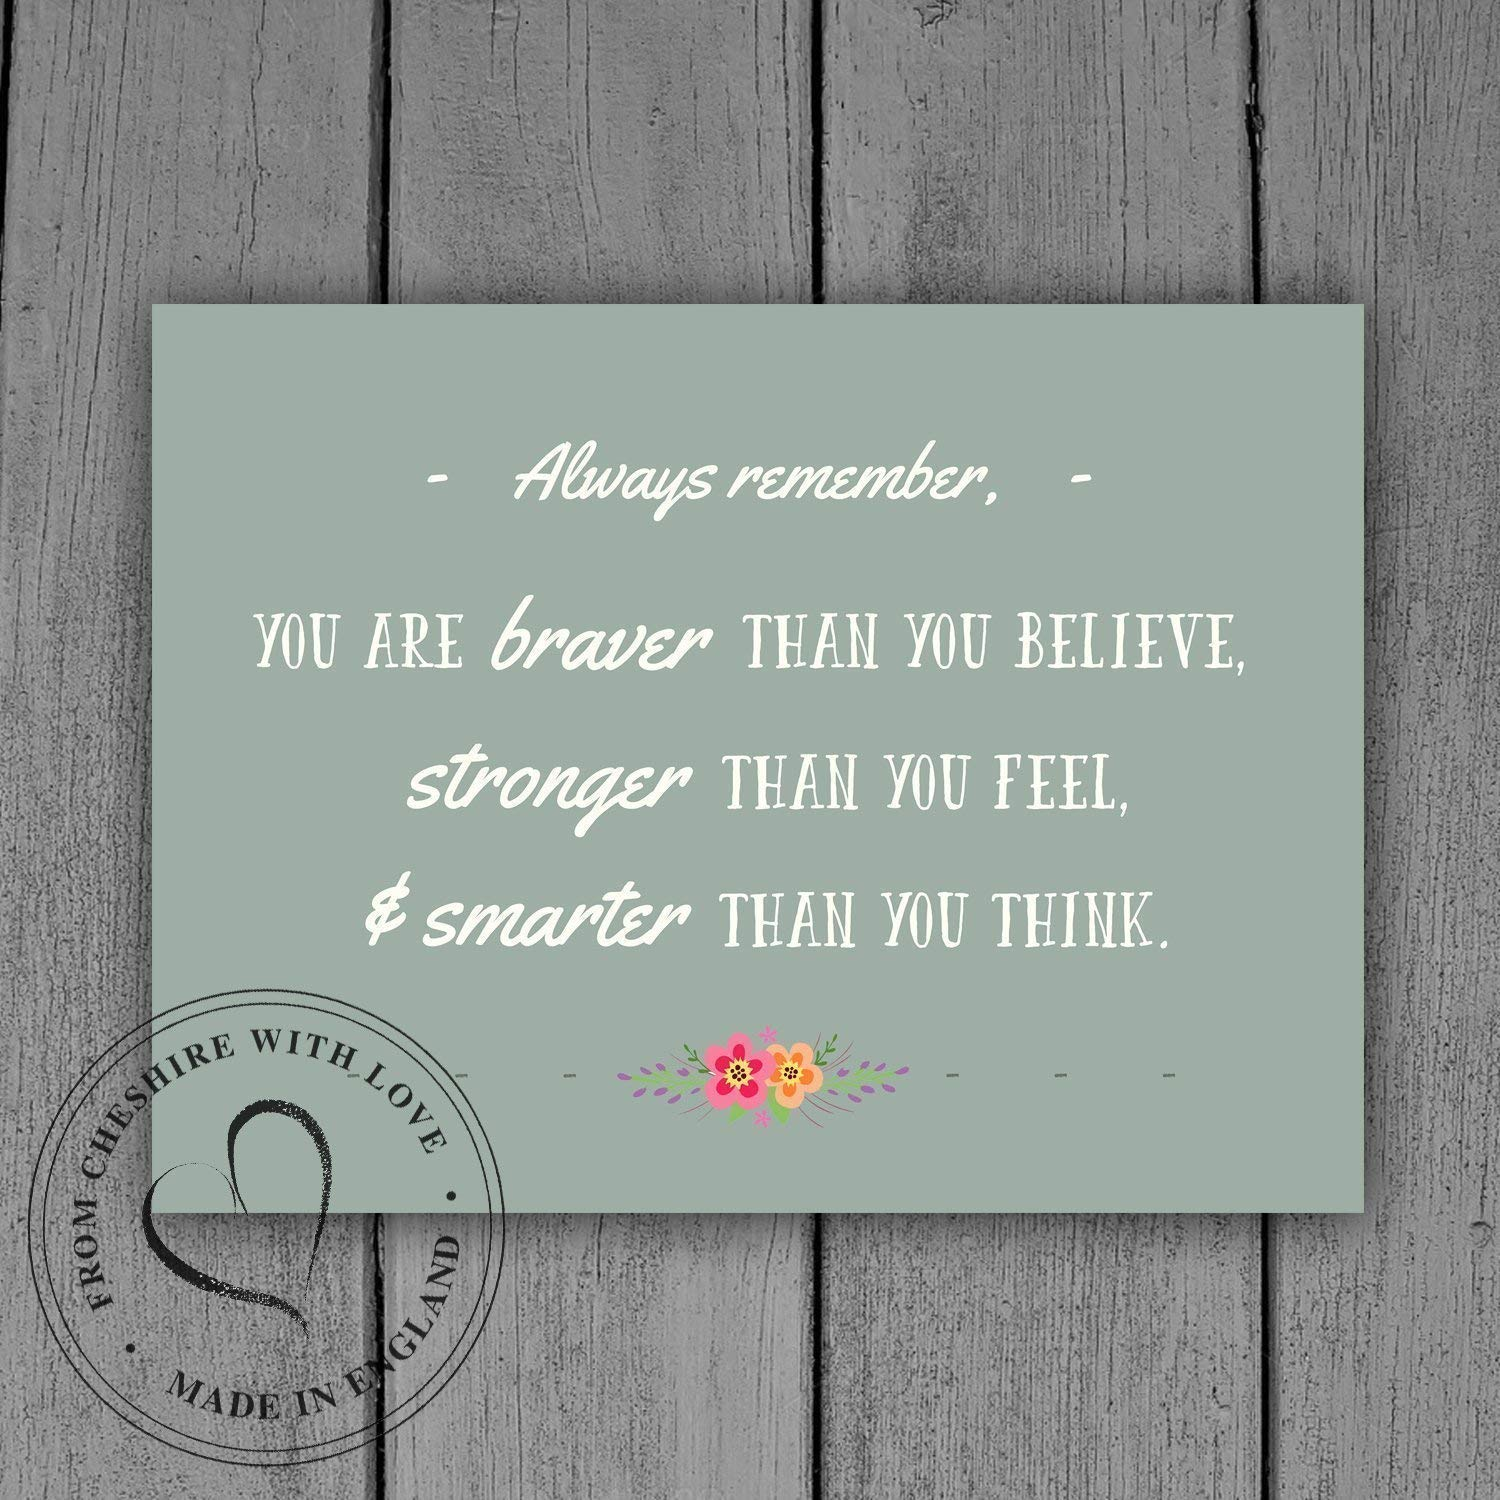 Winnie The Pooh Quote PRINT -'You Are Braver Than You Believe, Stronger Than You Feel & Smarter Than You Think.' Available in 2 Sizes. A.A. Milne Disney Quote.